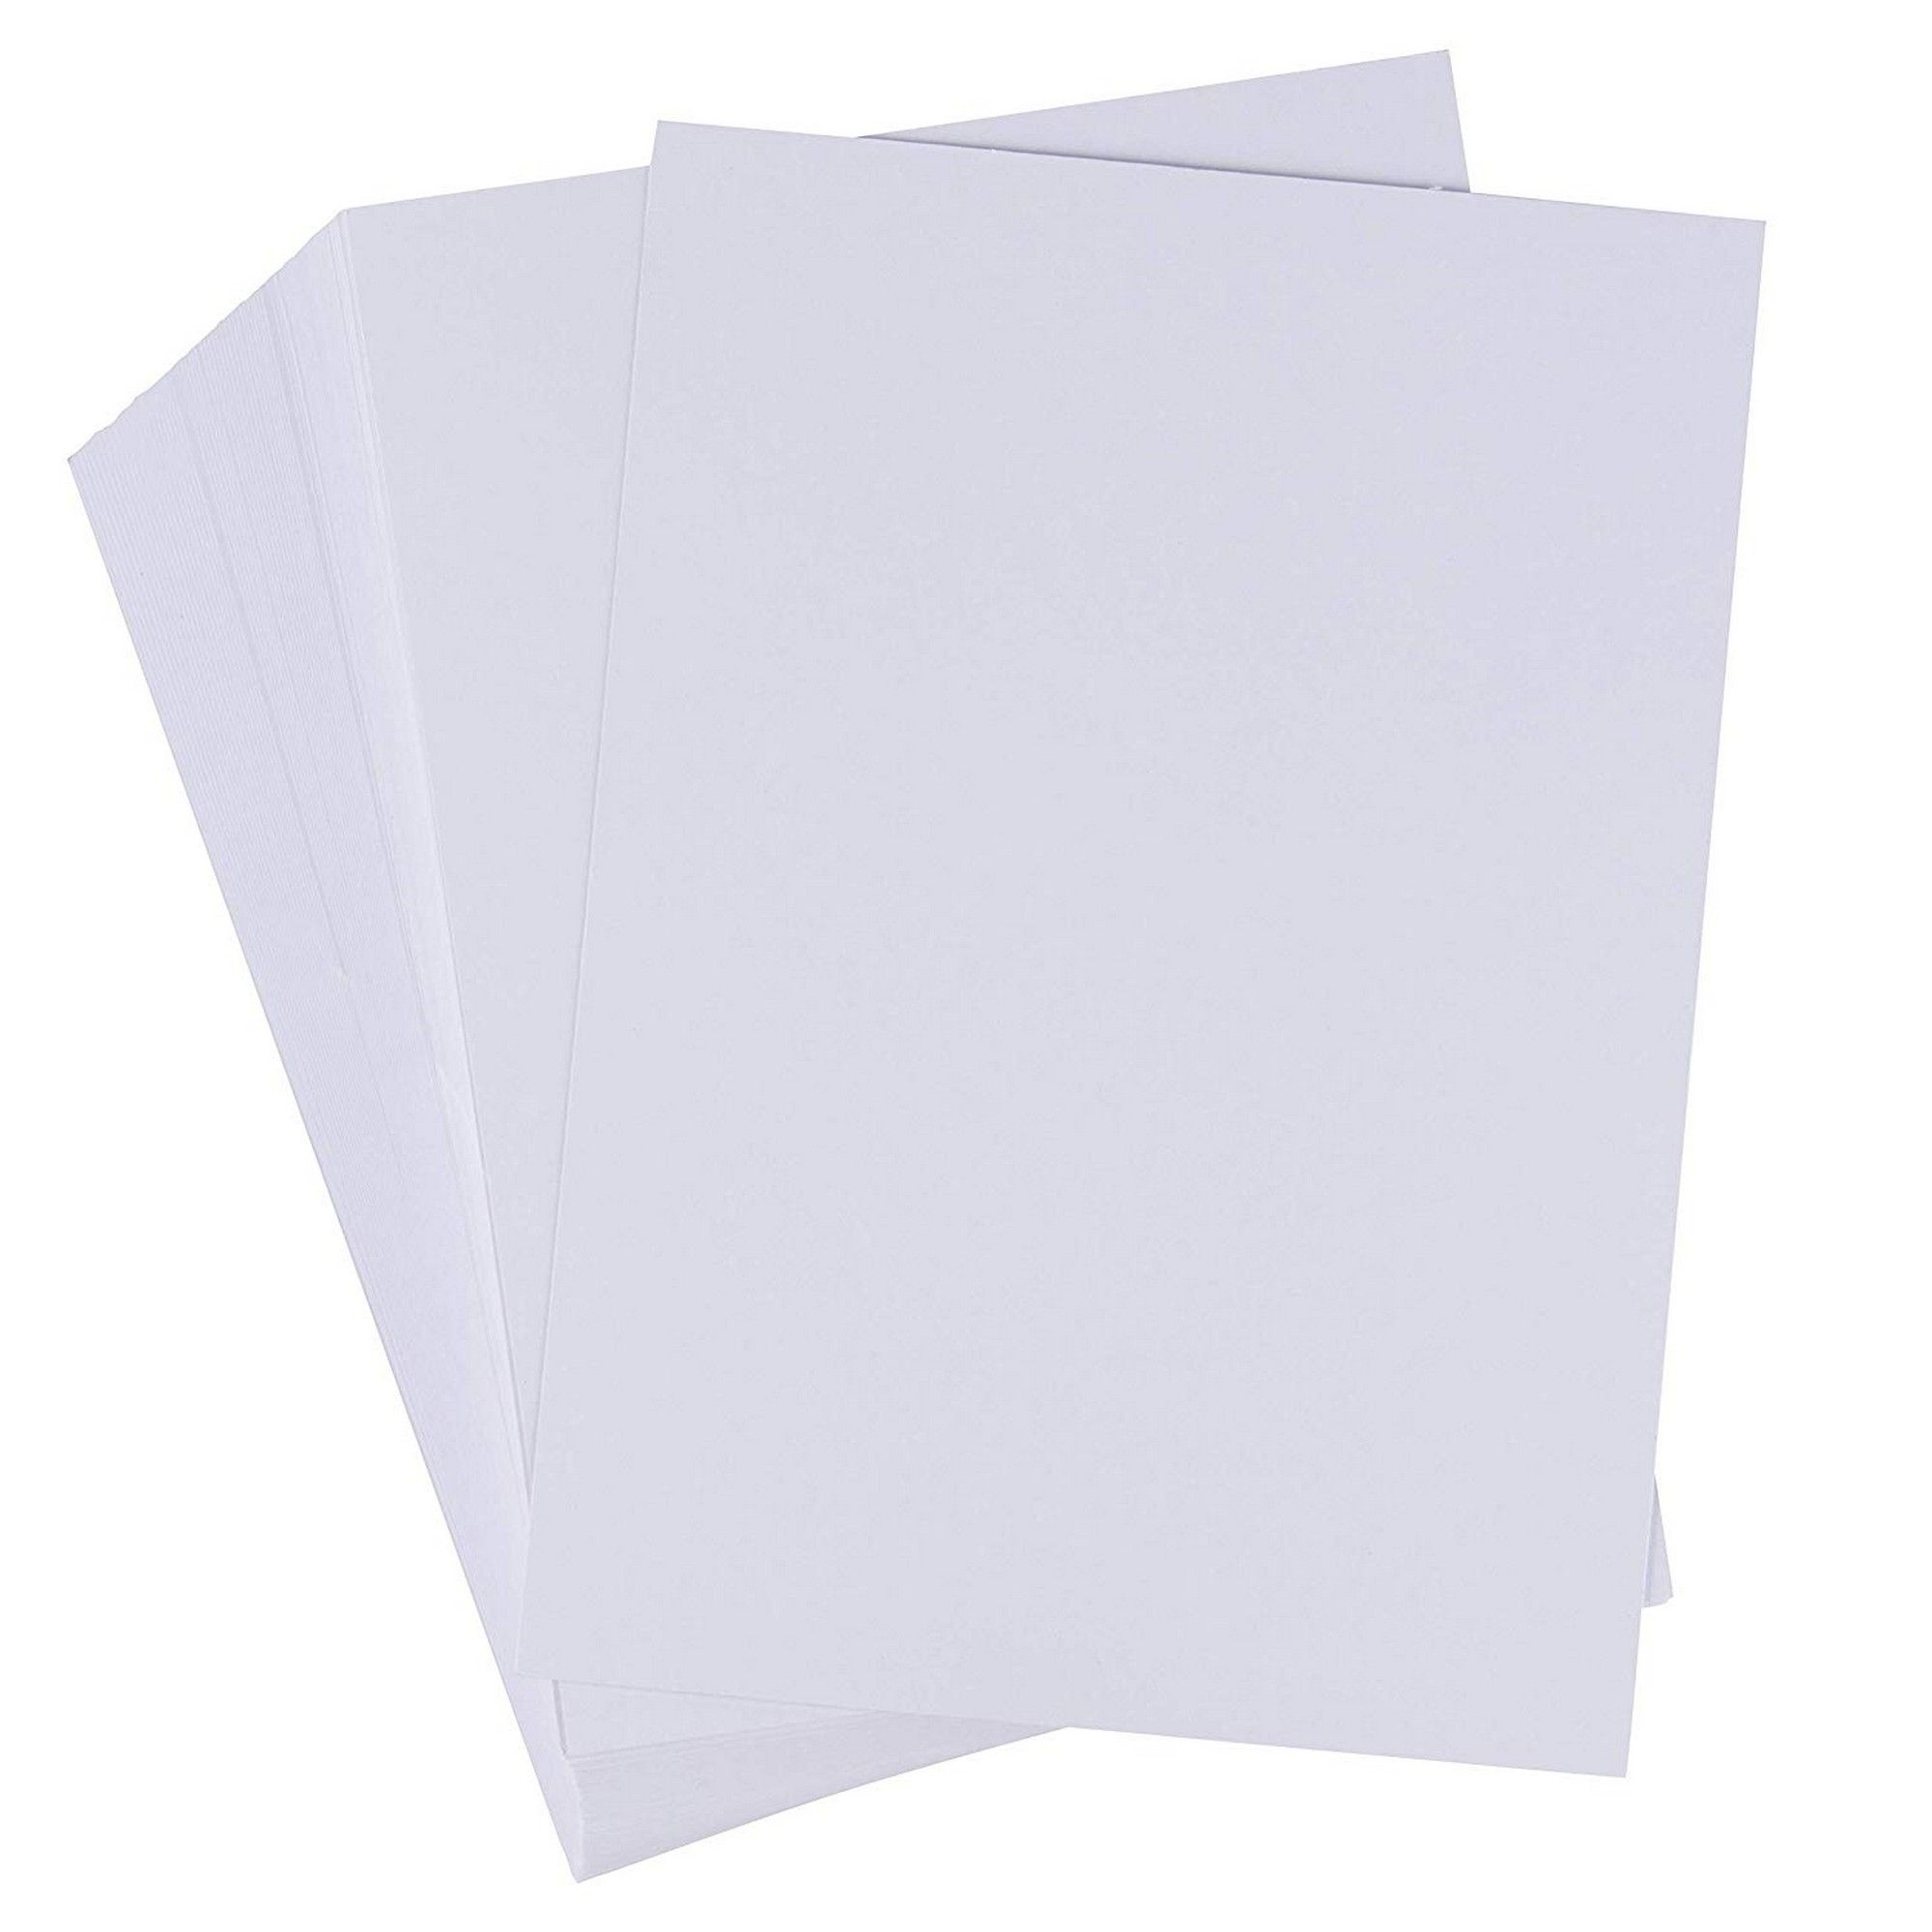 index cards  200pack 5x7 heavyweight white cardstock